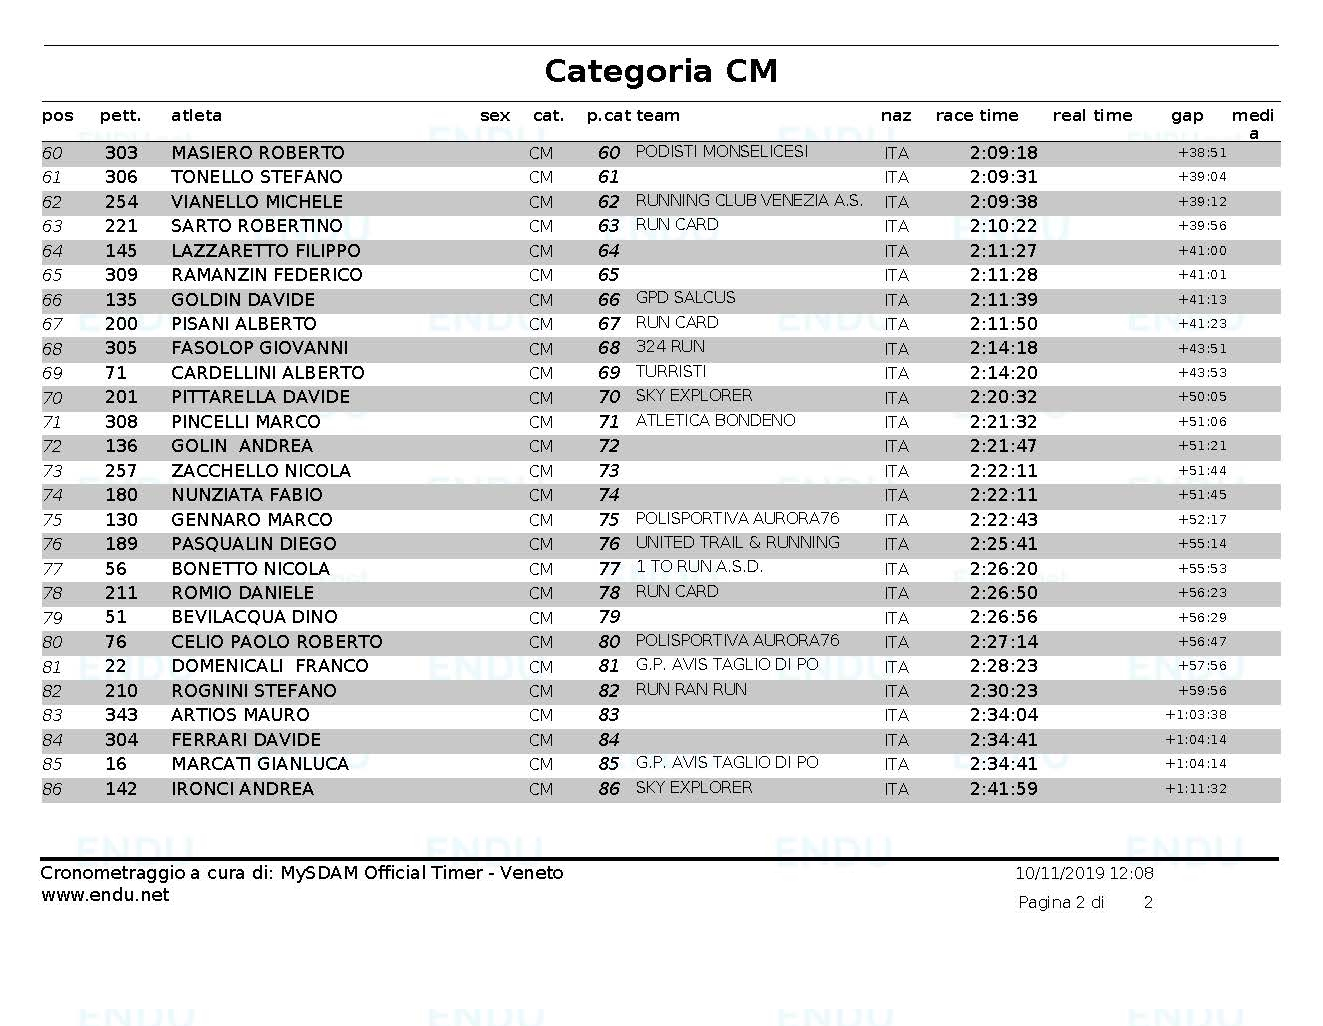 Classifica cat CM Pagina 2